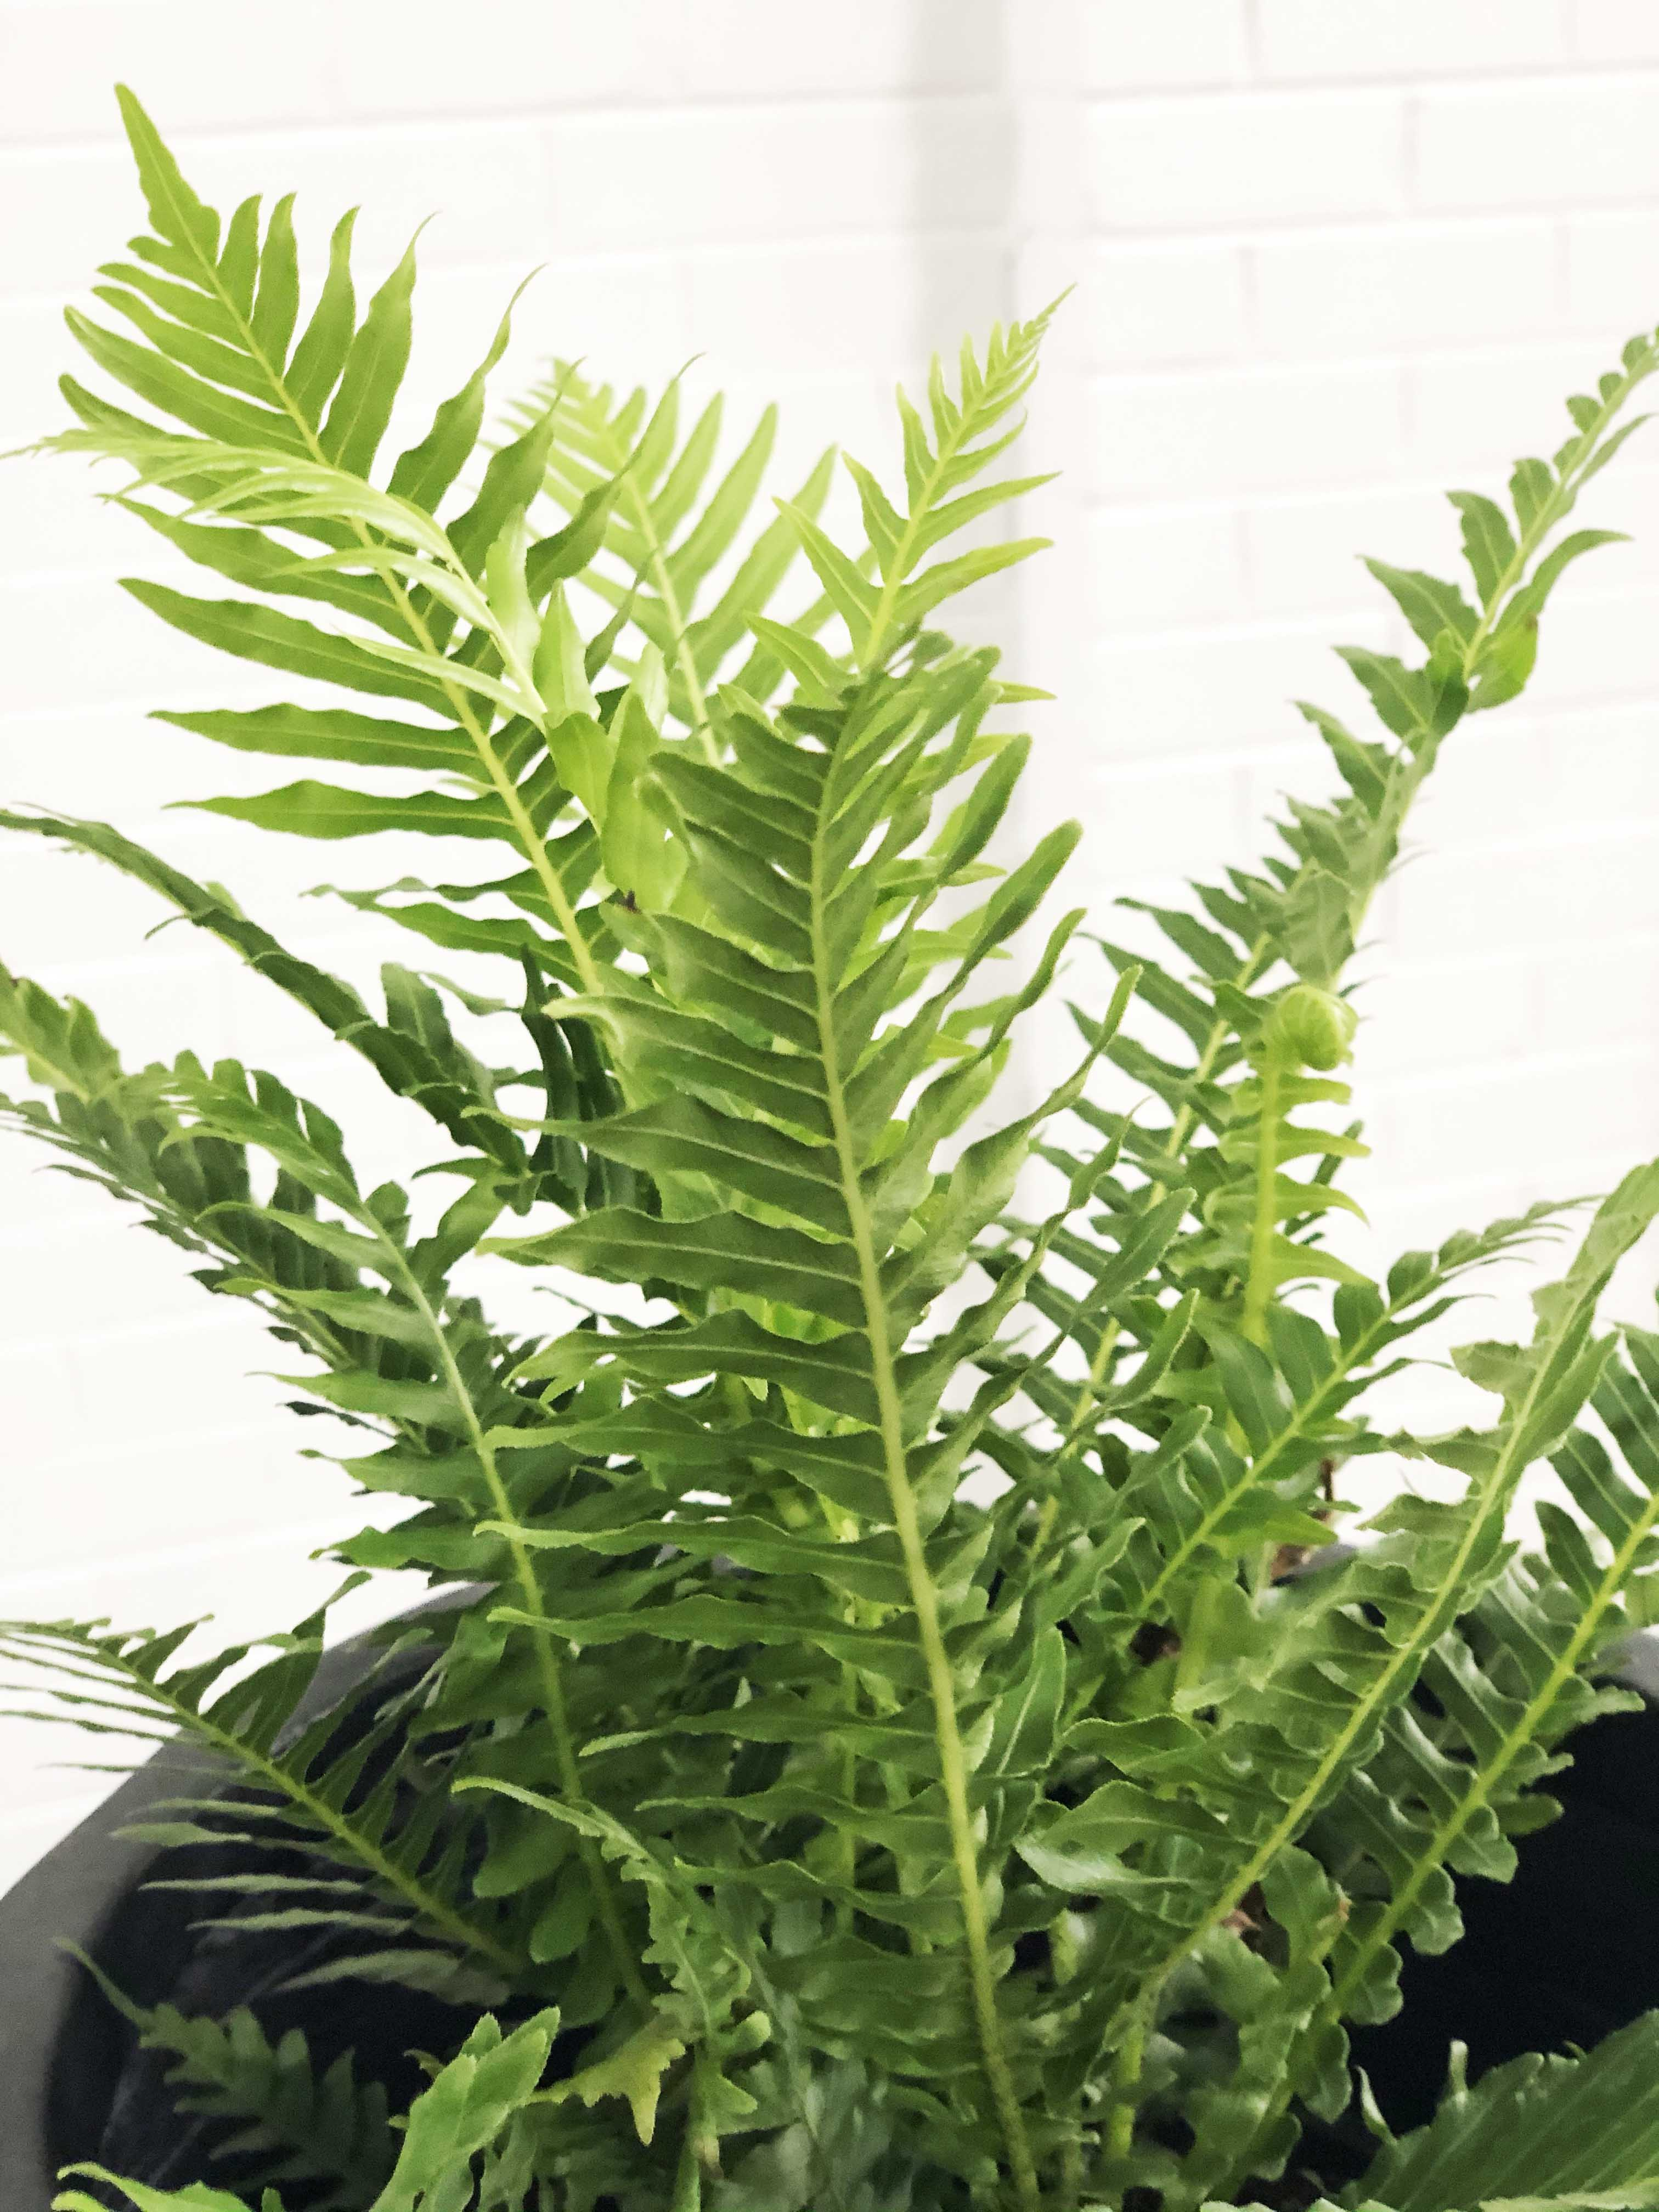 Silver Lady Fern (Dwarf Tree Fern - Blechnum gibbum) |  | Interior Jungle